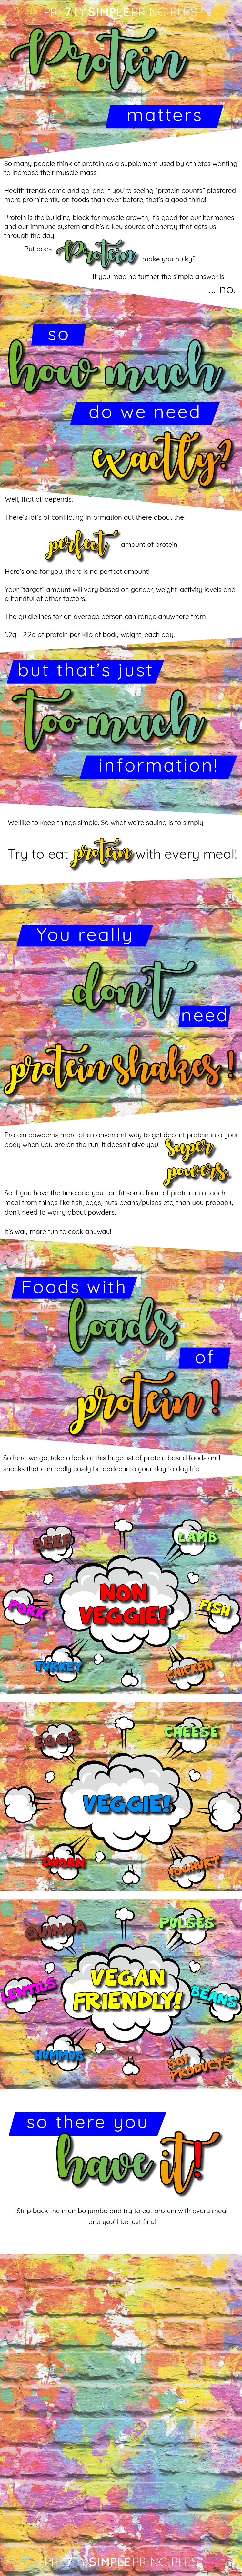 An informative infographic discussing the importance of protein, how much protein you should aim to eat and a list of high protein foods that work well when it comes to increasing your protein intake. Vegetarian, vegan and meat options are all provided in this fun and colourful infographic (free to anyone to save for future viewing).